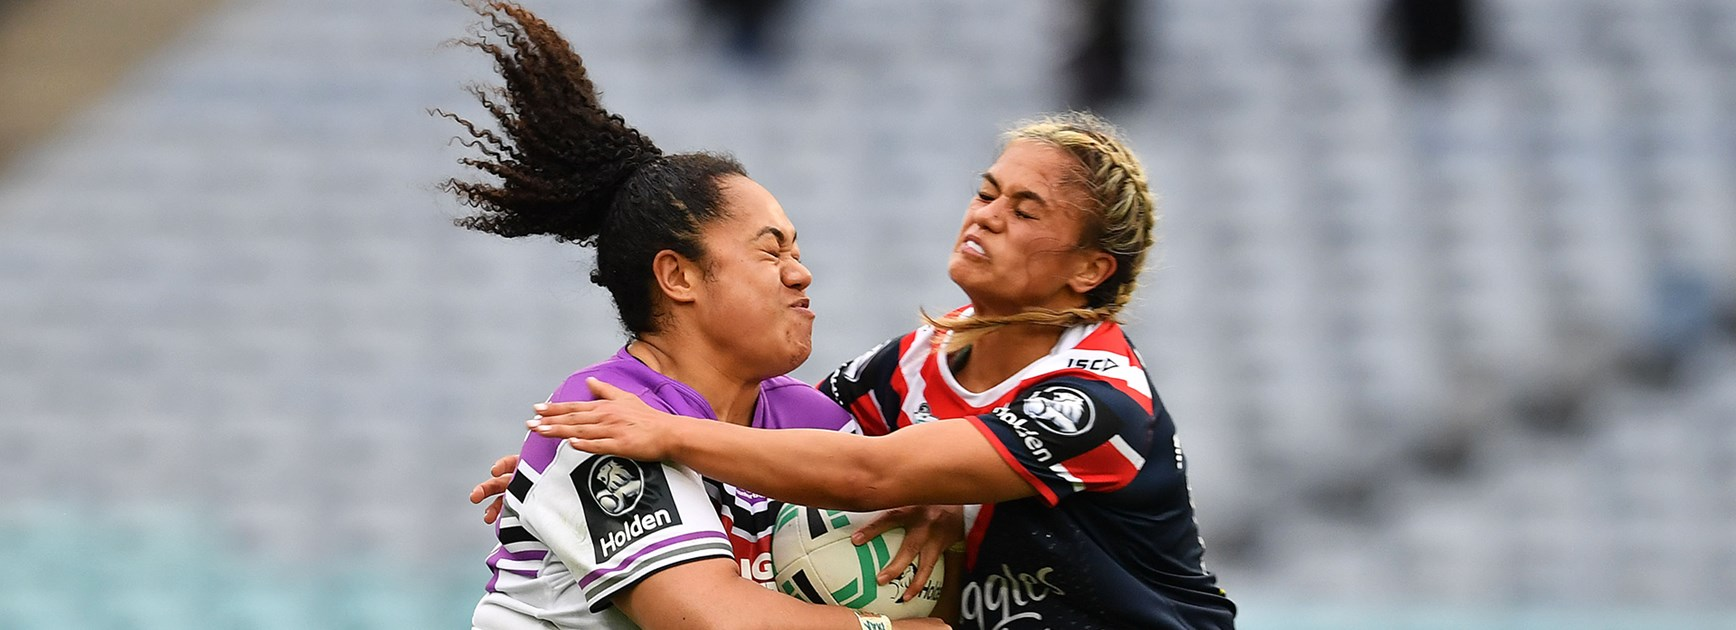 NRLW Roosters v Warriors: Howard grabs No.7; Nine rookies for Warriors